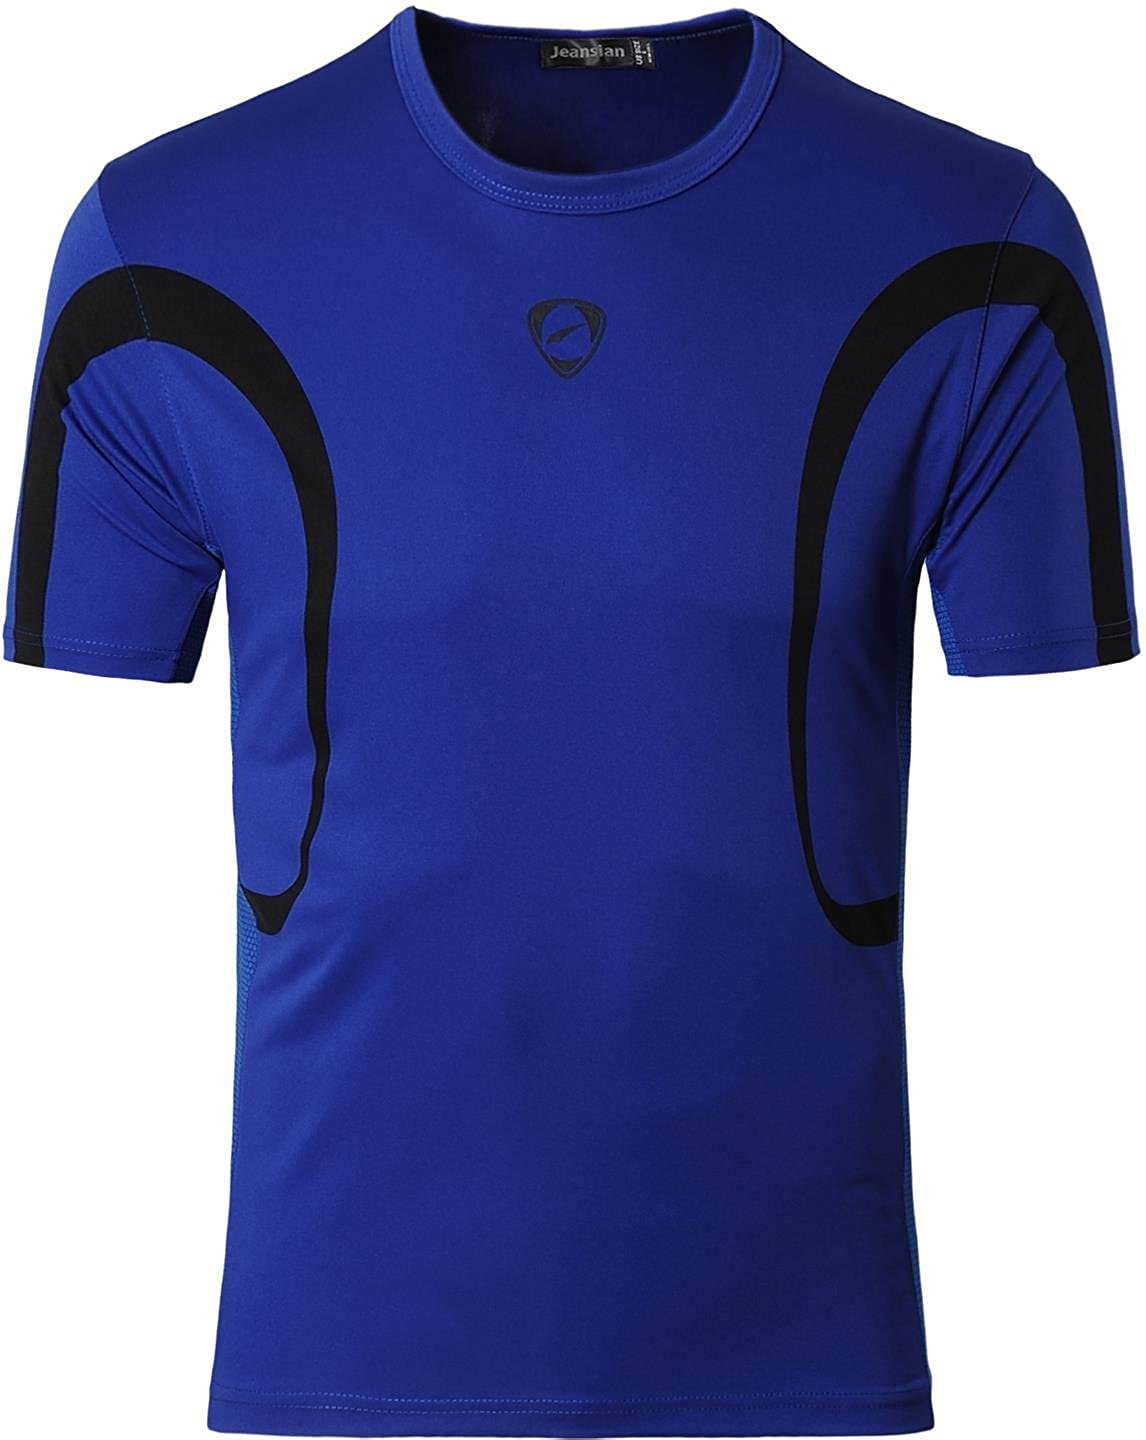 jeansian Men's Sports Breathable Quick Dry Short Sleeve T-Shirts Tee Tops Running Training LSL020 LSL171